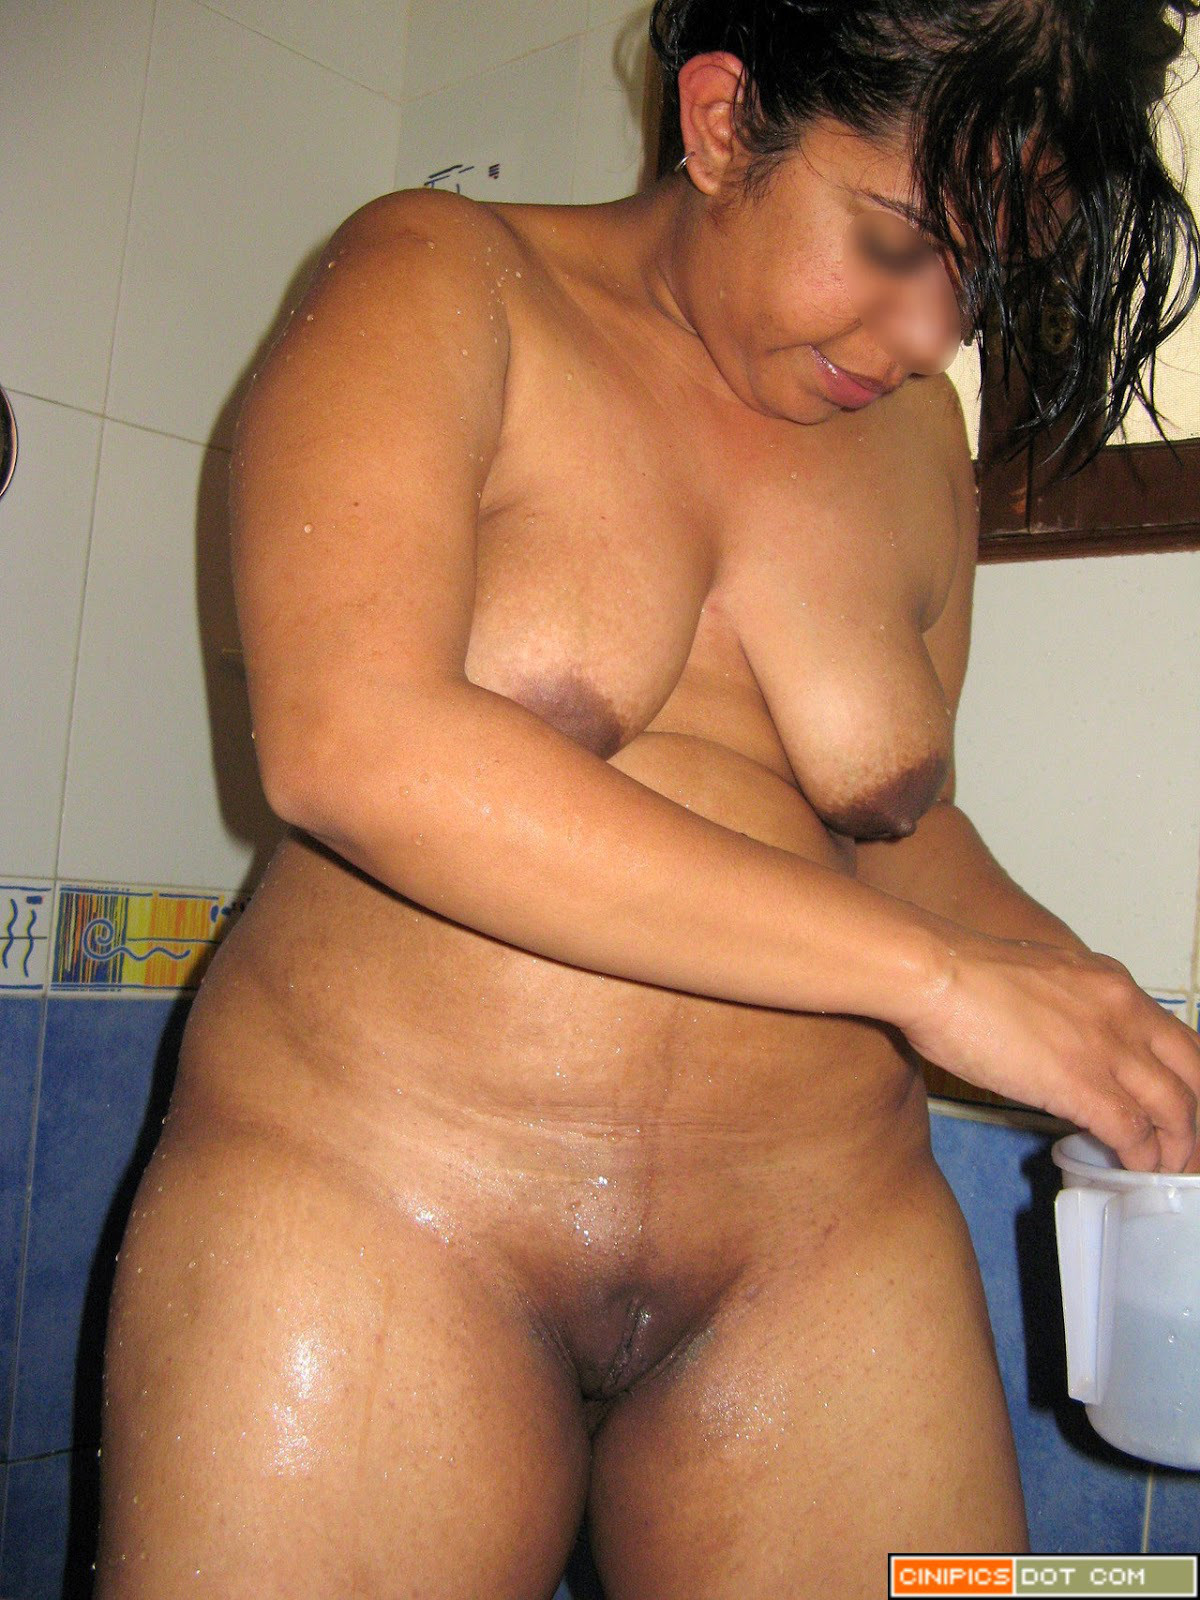 Tamil xnxx mom abx son